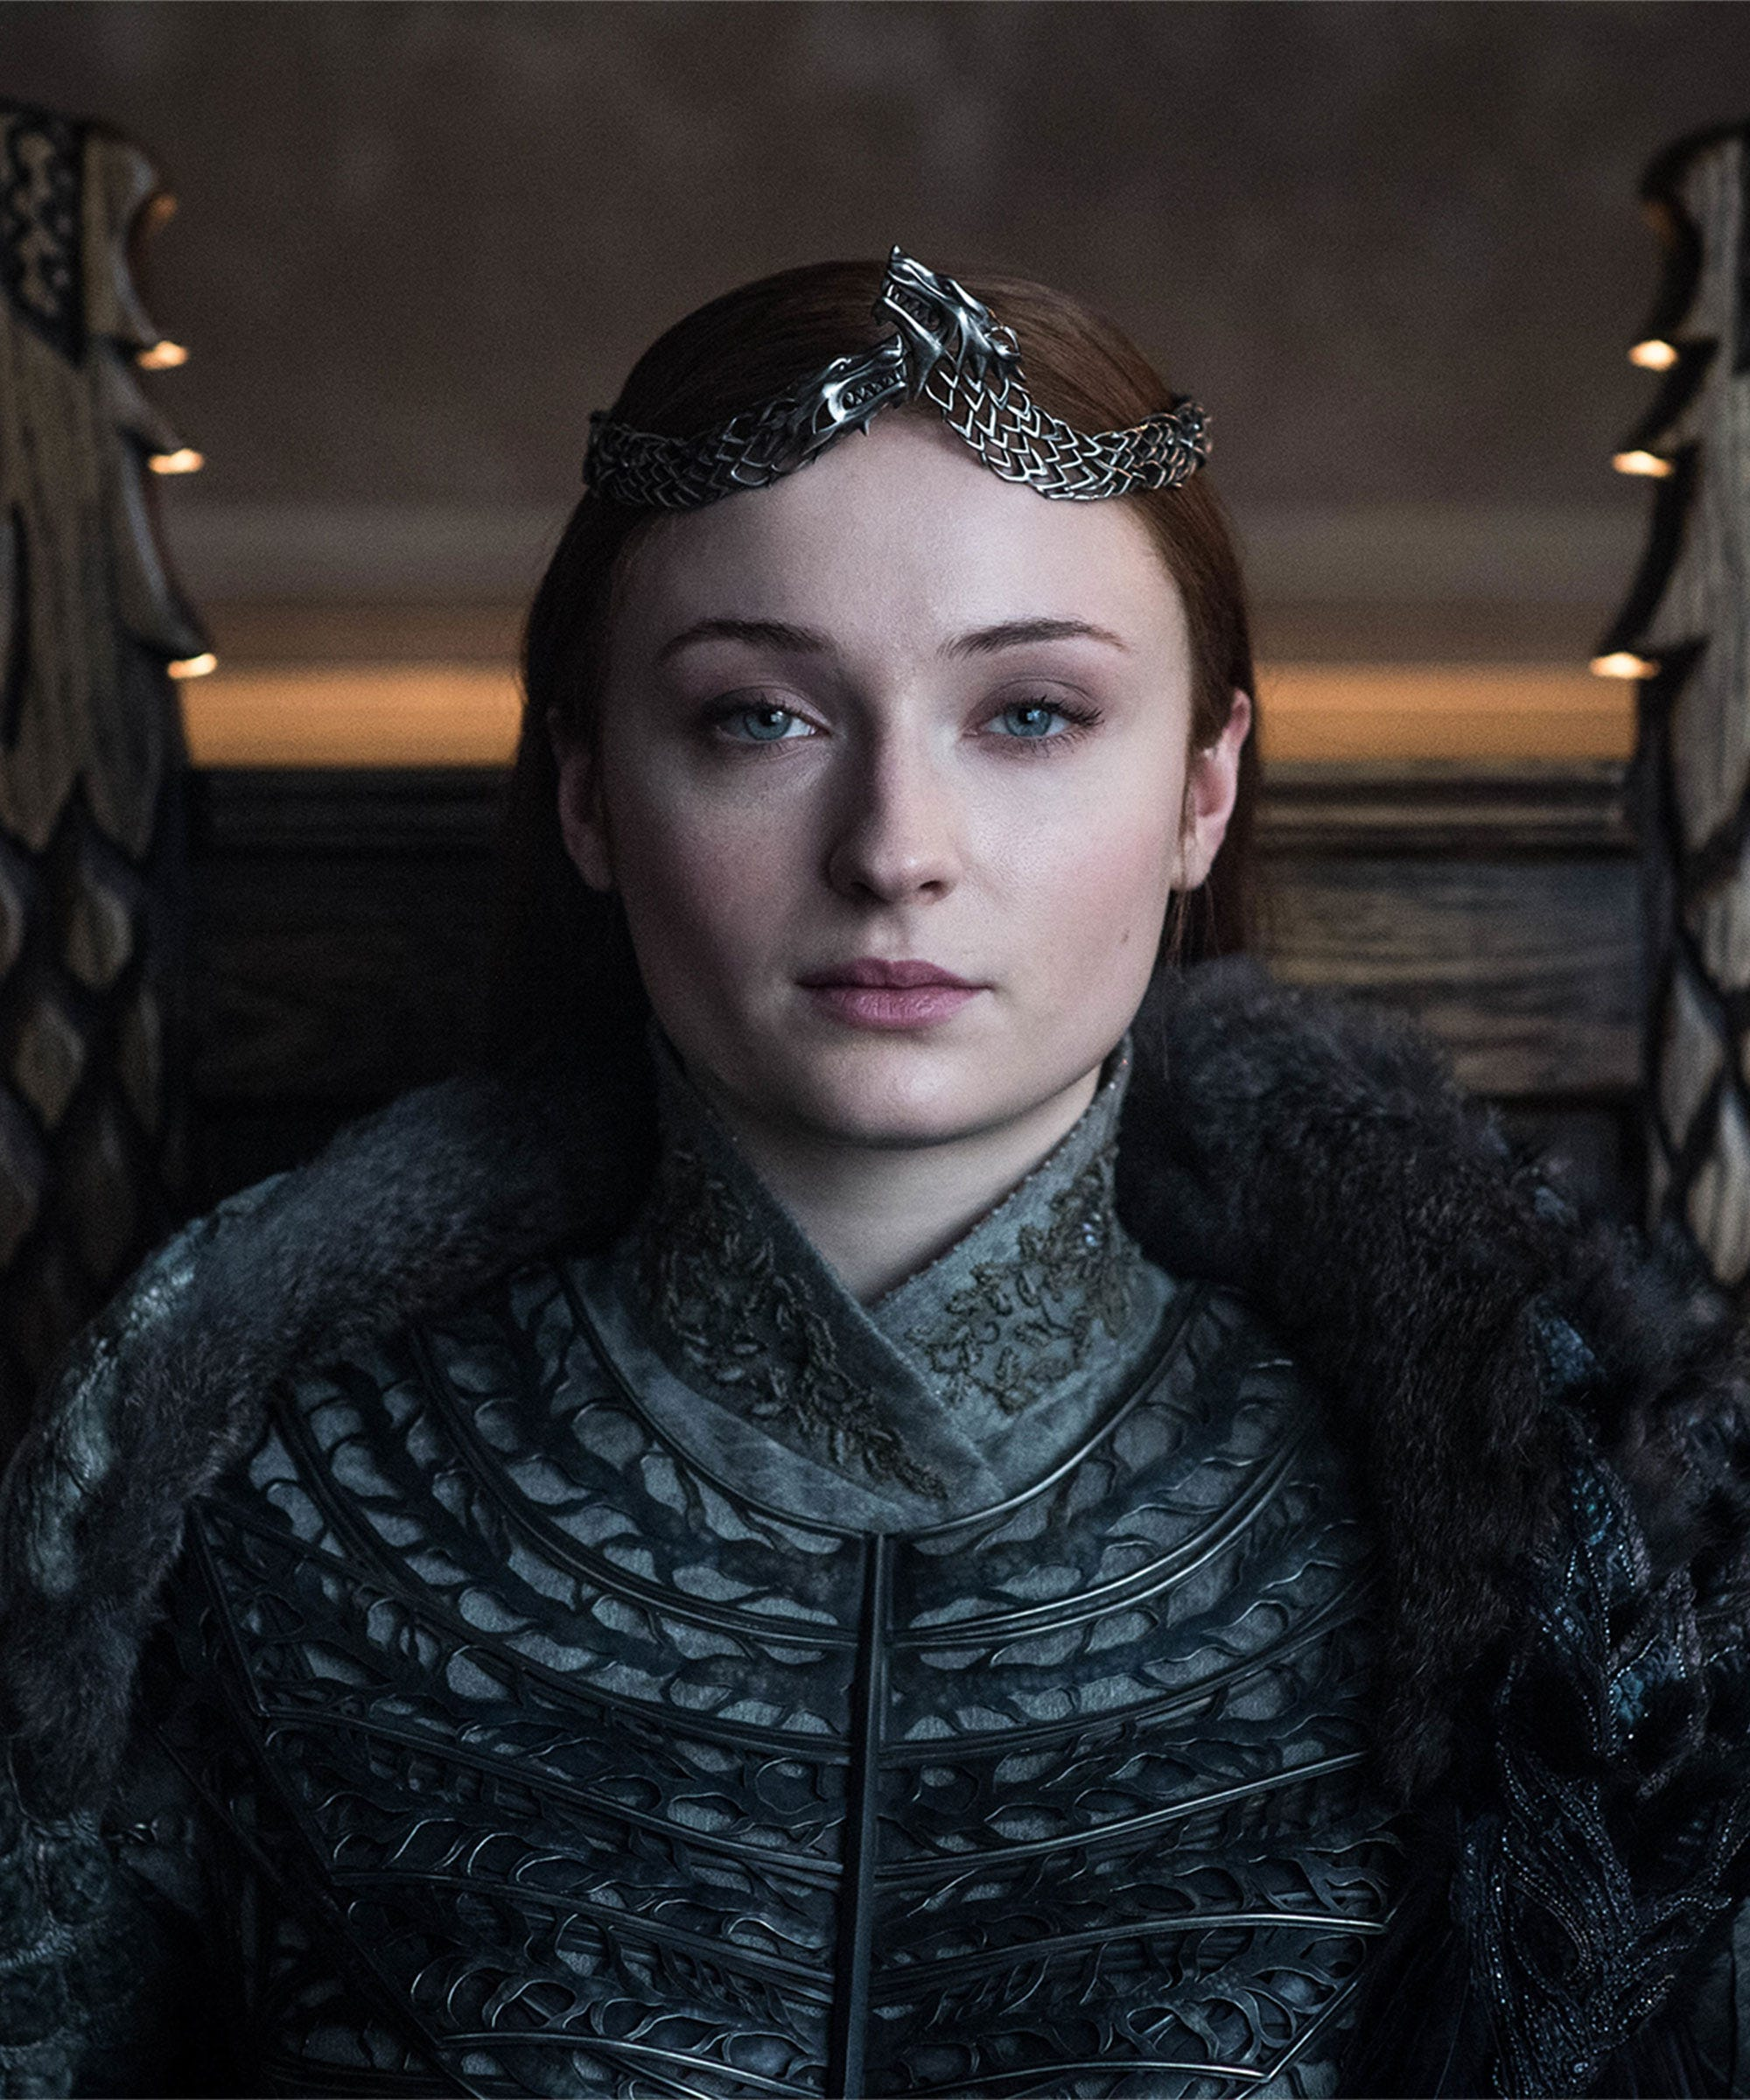 Sophie Turner Just Revealed Some Disappointing News About The Future Of Sansa Stark